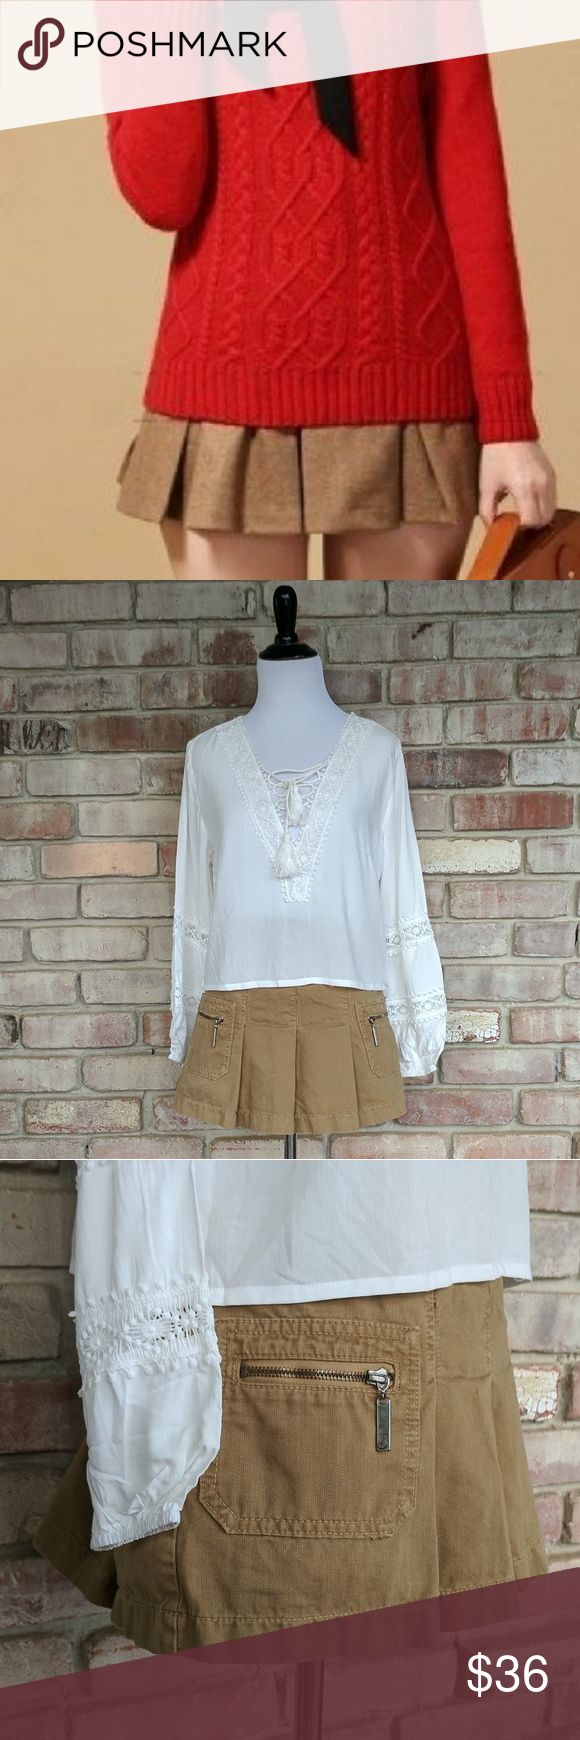 Juicy Couture Pleated Khaki Skirt Adorable pleated schoolgirl uniform style skirt by Juicy Couture. Excellent worn condition! Size small.  Ask me about free shipping! Juicy Couture Skirts Mini